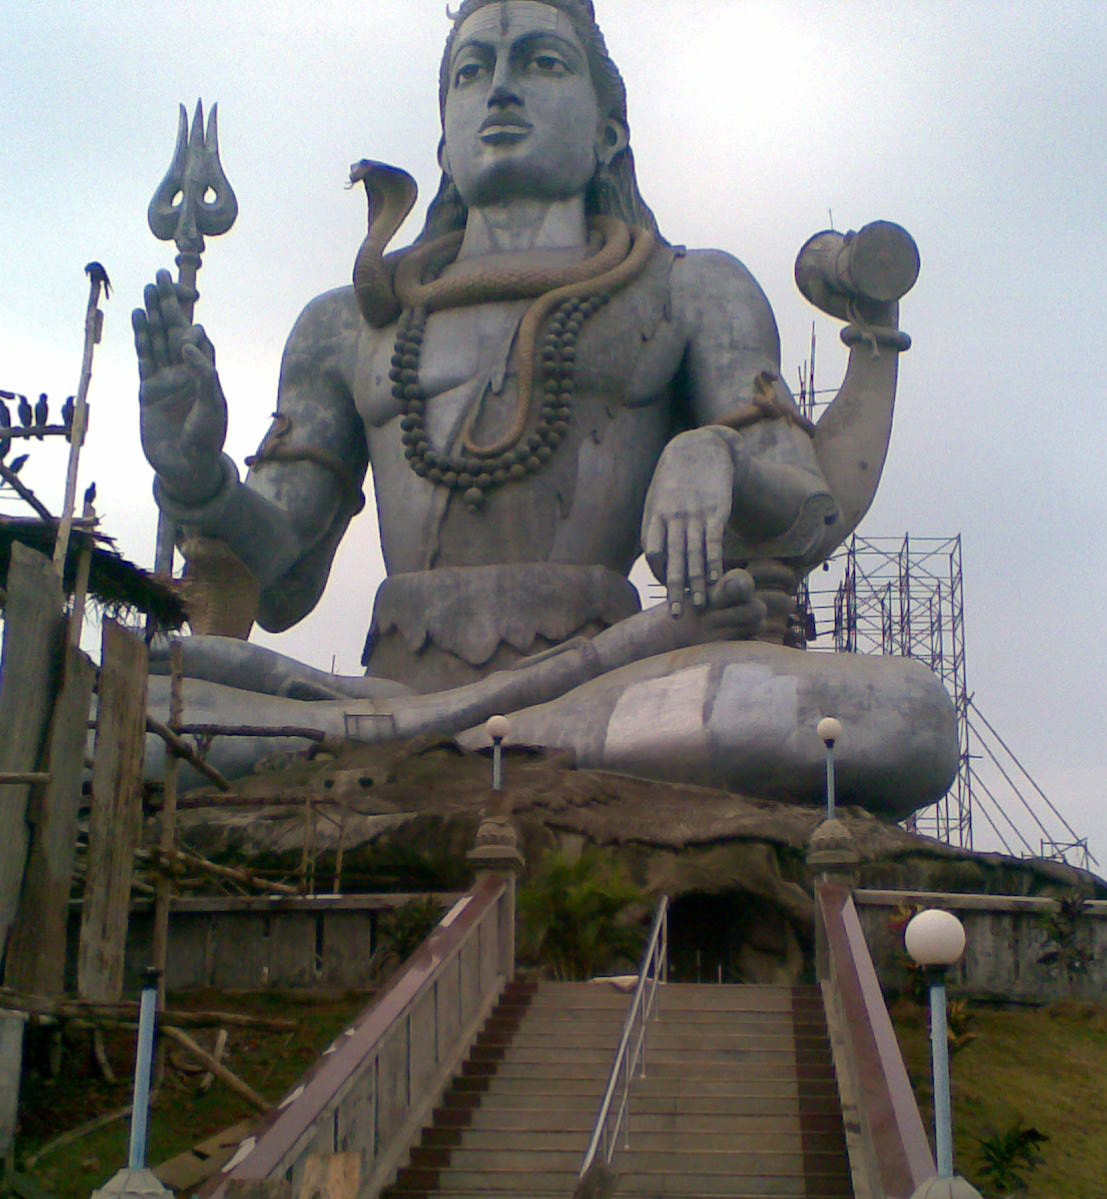 Mahabaleshwar India  City pictures : Description Shiva Statue at Mahabaleshwar, Karnataka, India